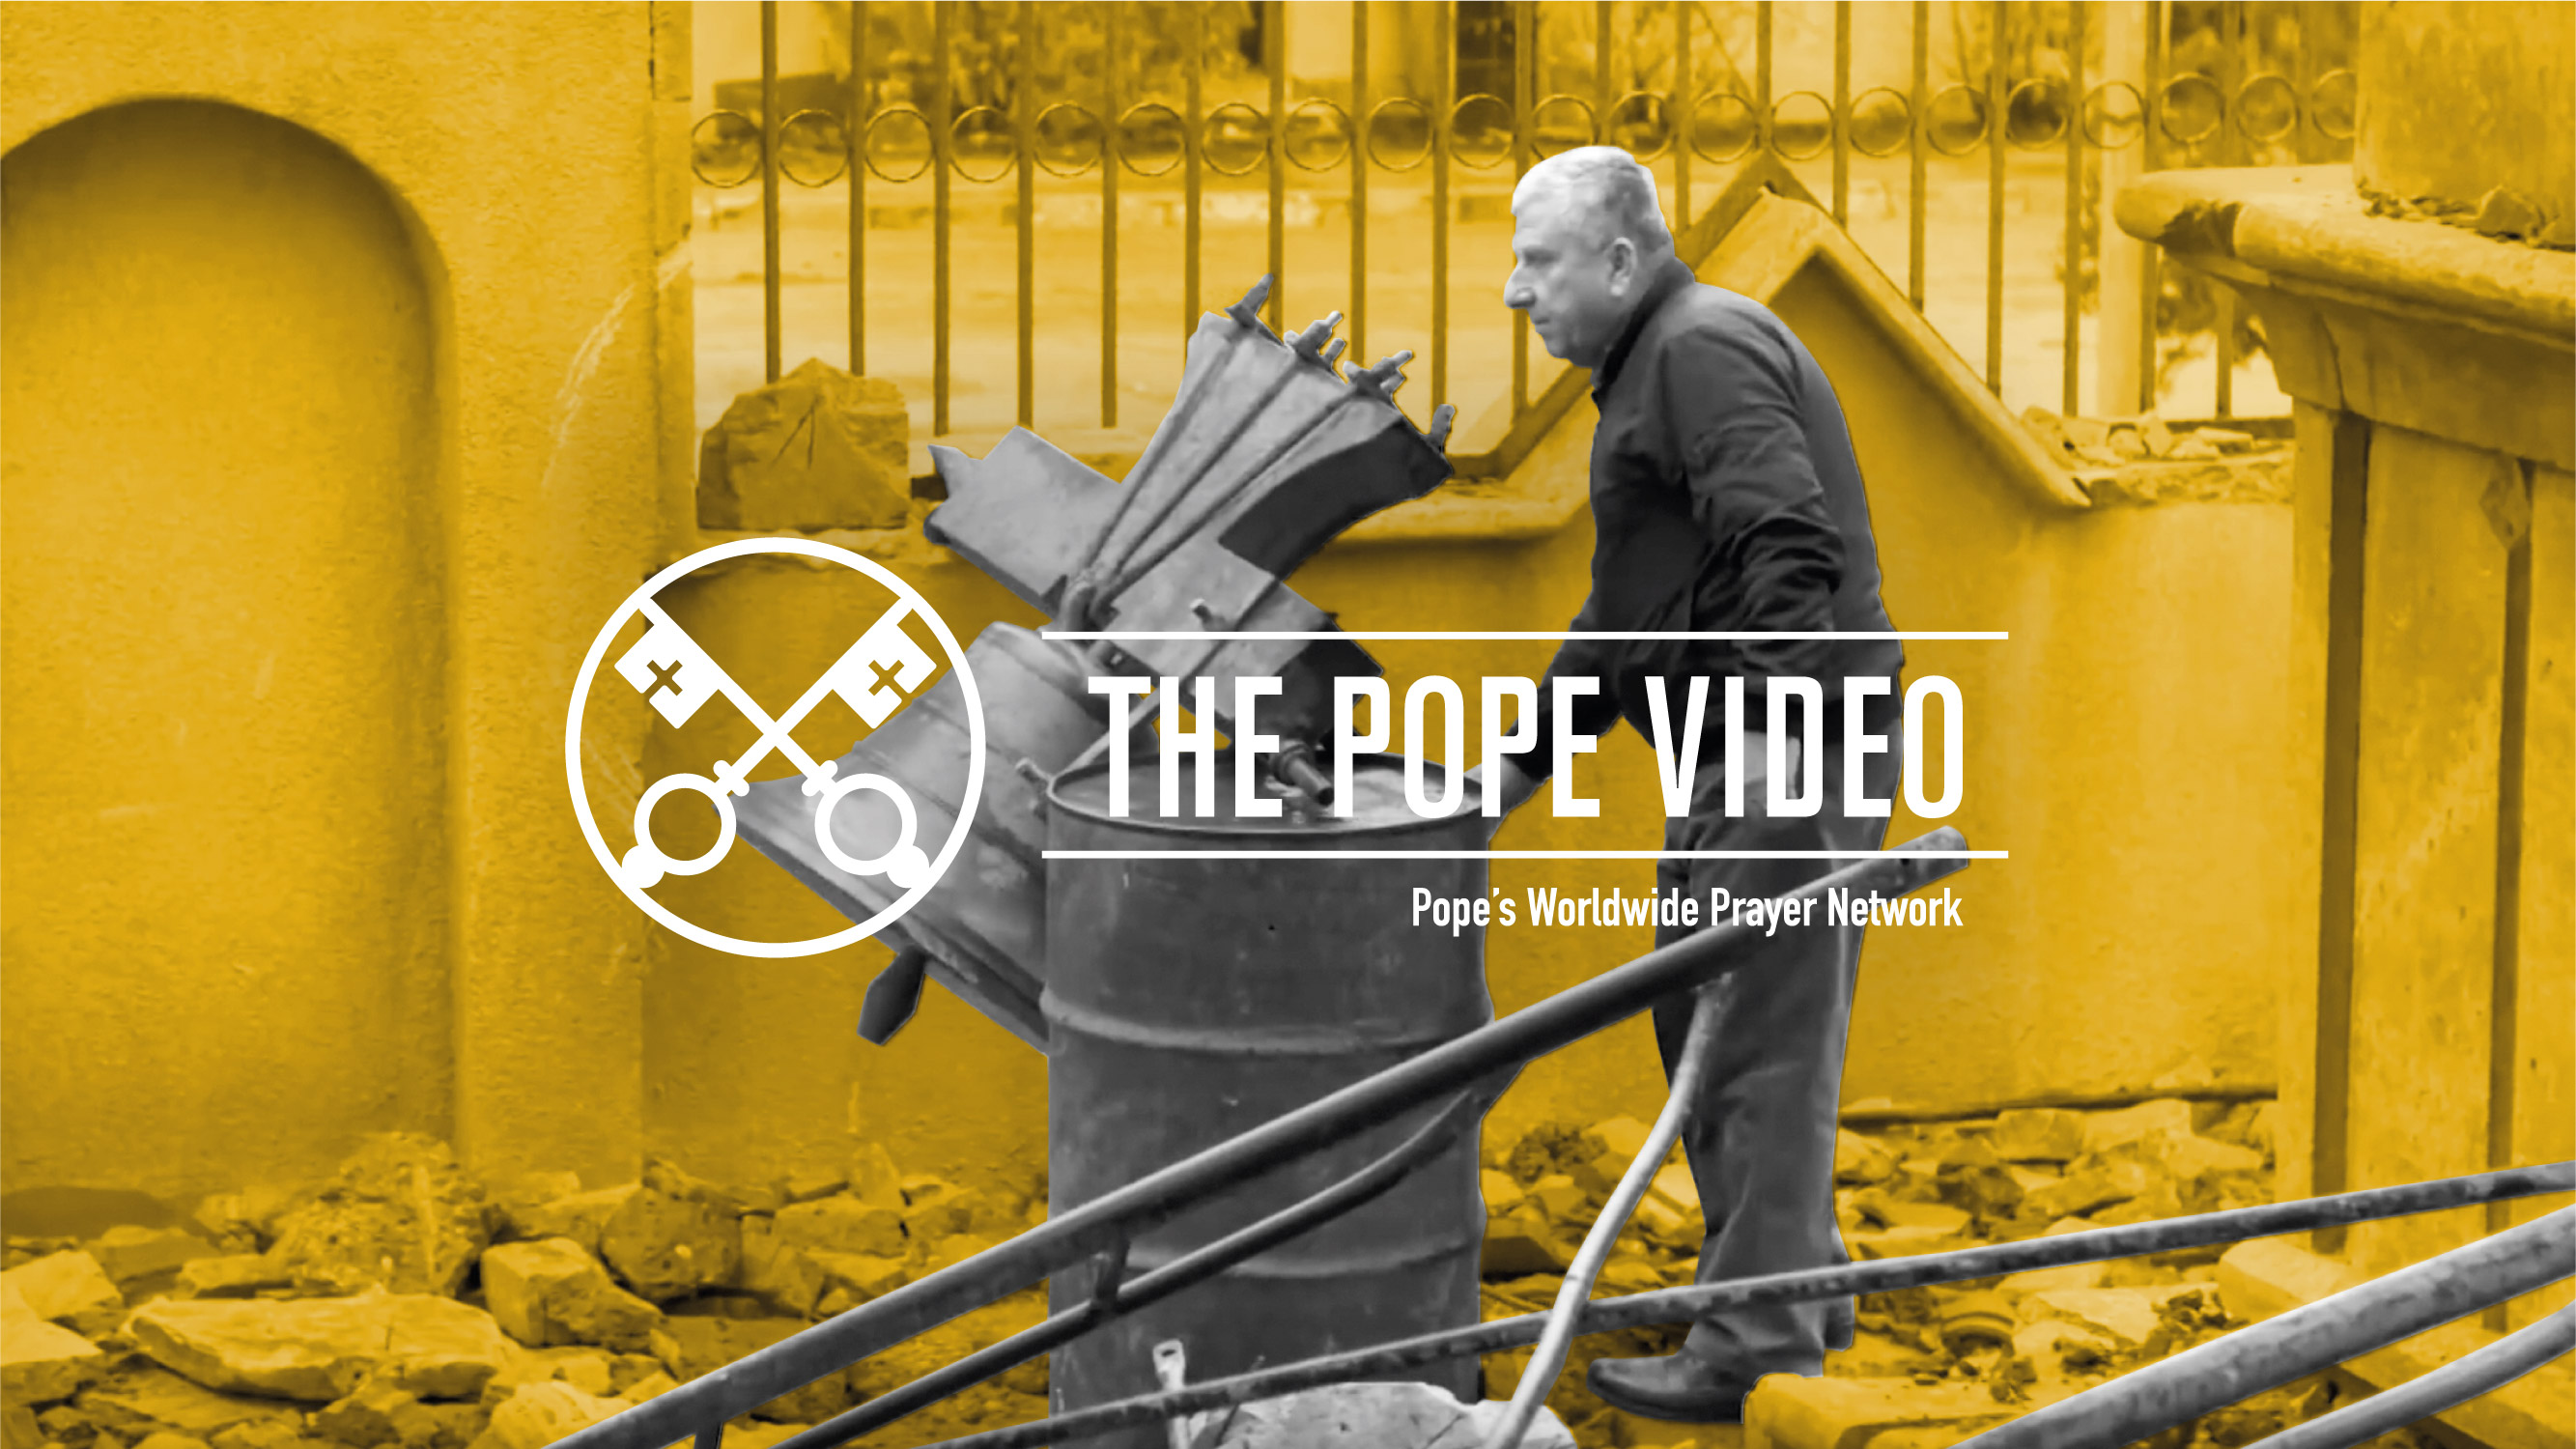 The Pope Video March 2019 (Official Image)